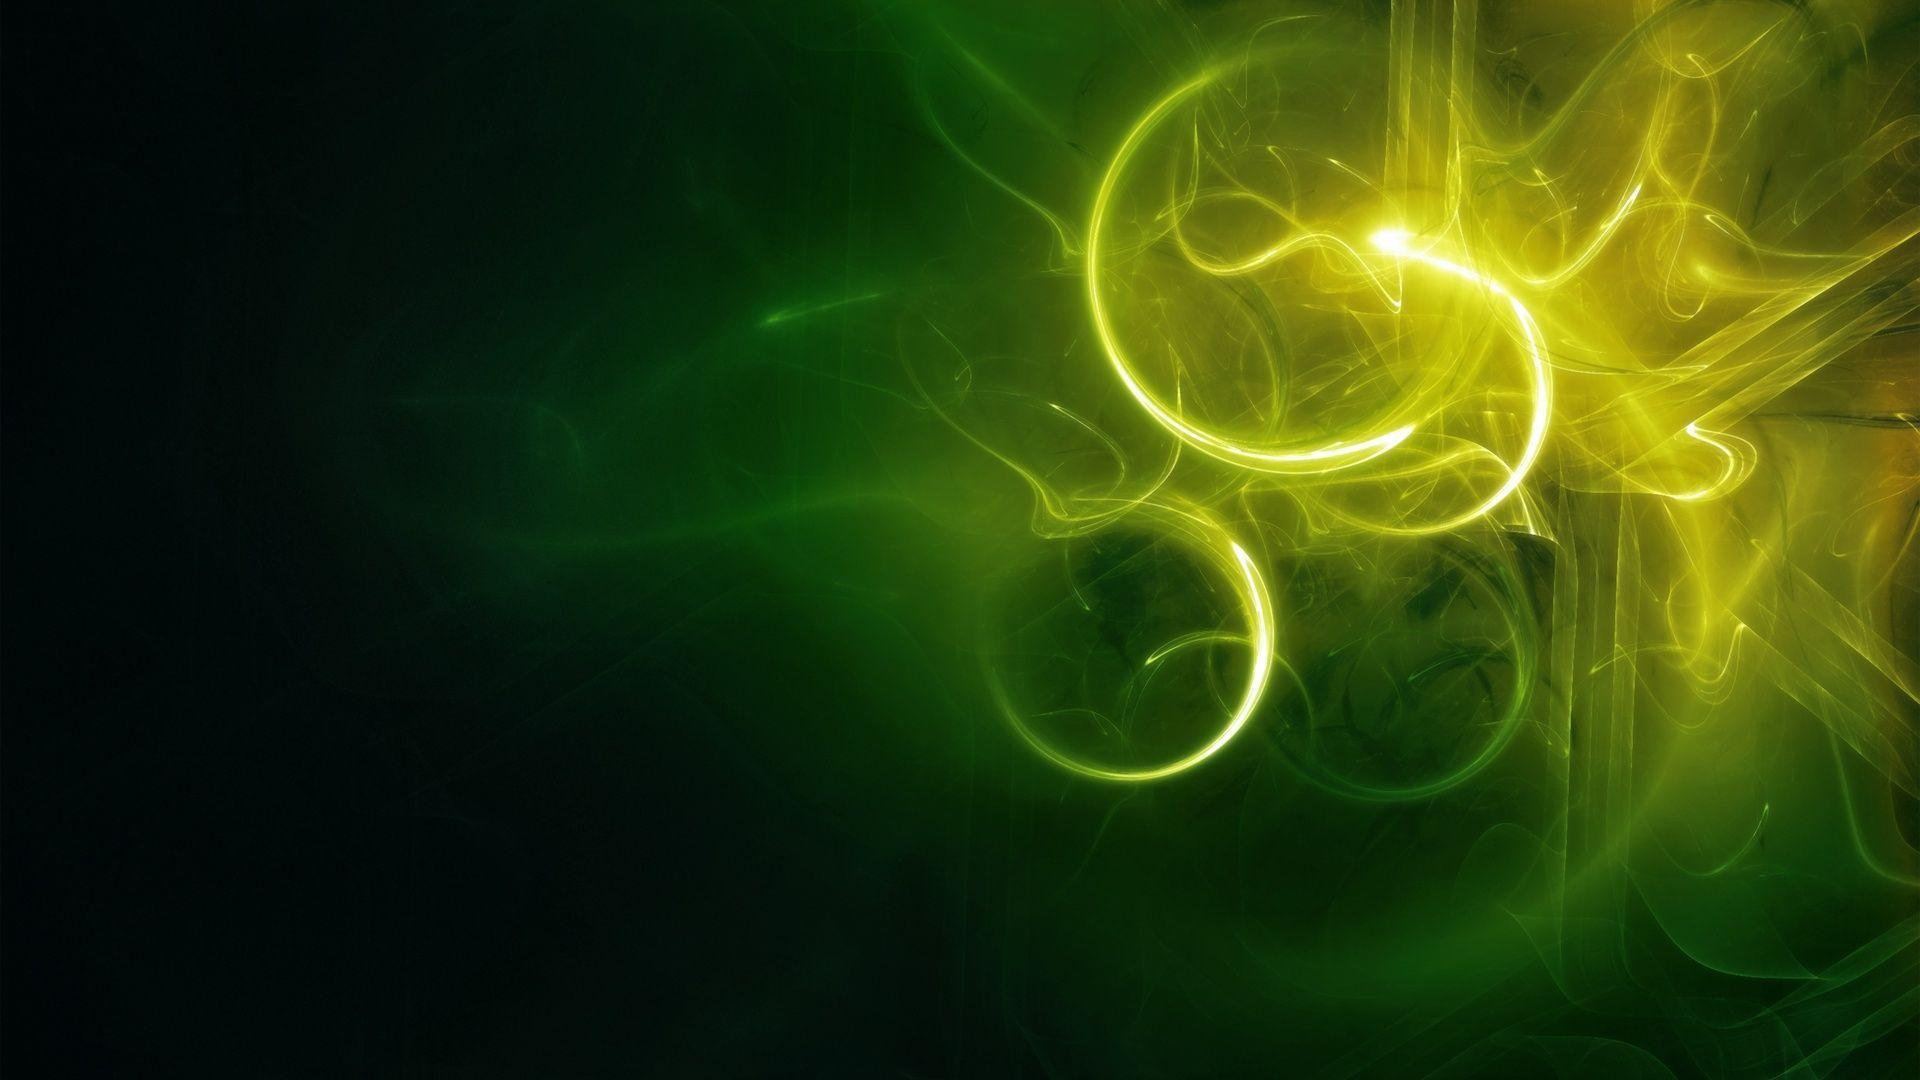 Wallpapers For > Desktop Wallpapers Abstract Green